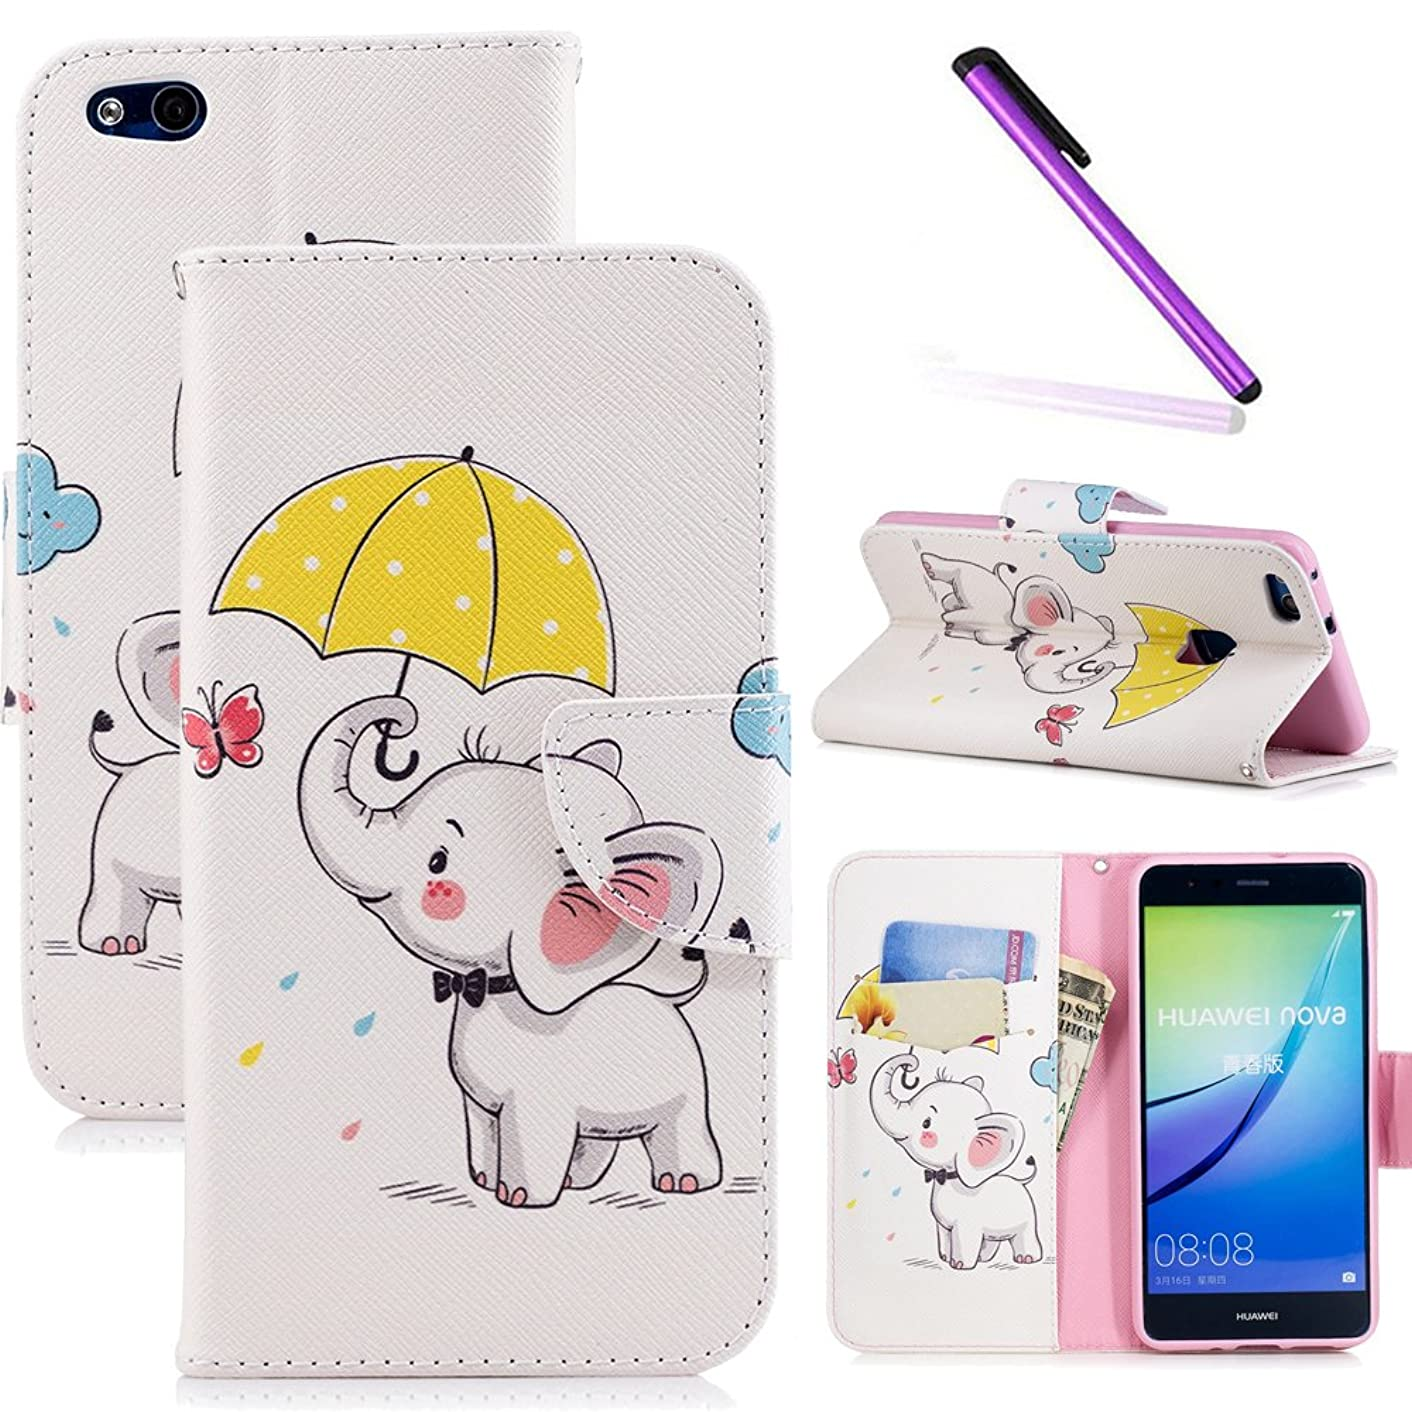 LEECOCO Huawei P10 Lite Case Fancy Printing Floral Wallet Case Card Cash Holder Slots PU Leather Folio Flip Kickstand Protective Slim Case Cover Huawei P10 Lite Umbrella Dumbo BF